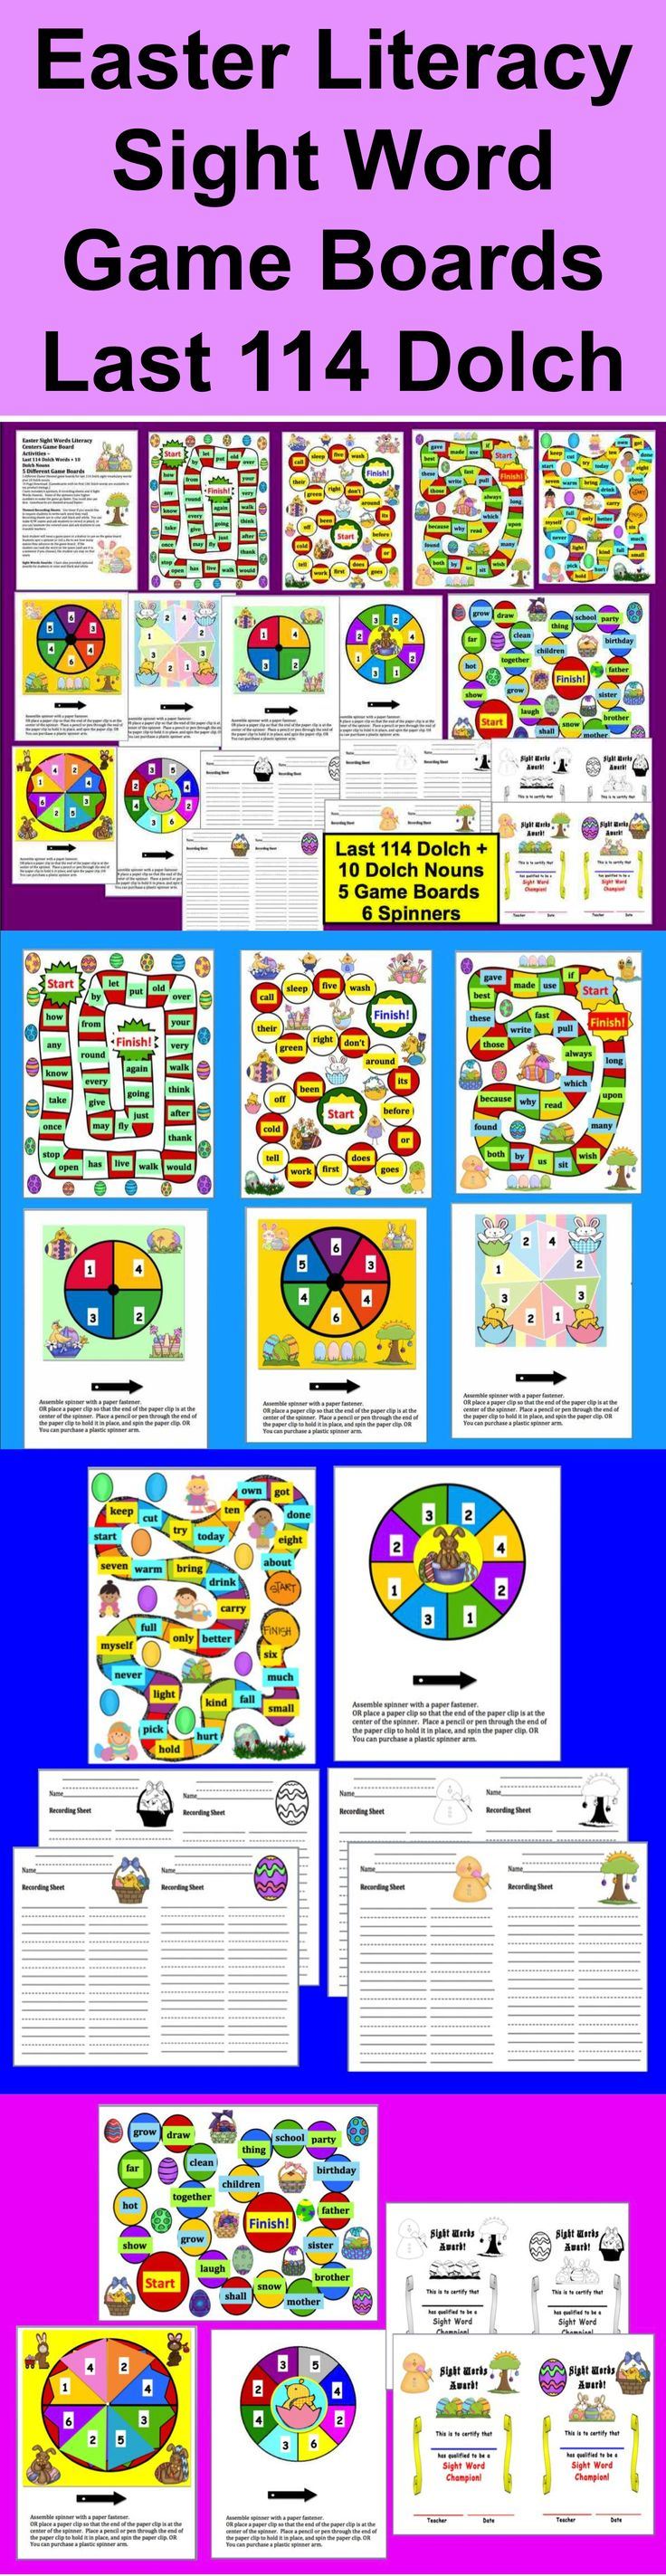 Worksheet 50 Sight Words worksheet 50 sight words mikyu free high frequency images guru easter literacy centers f large